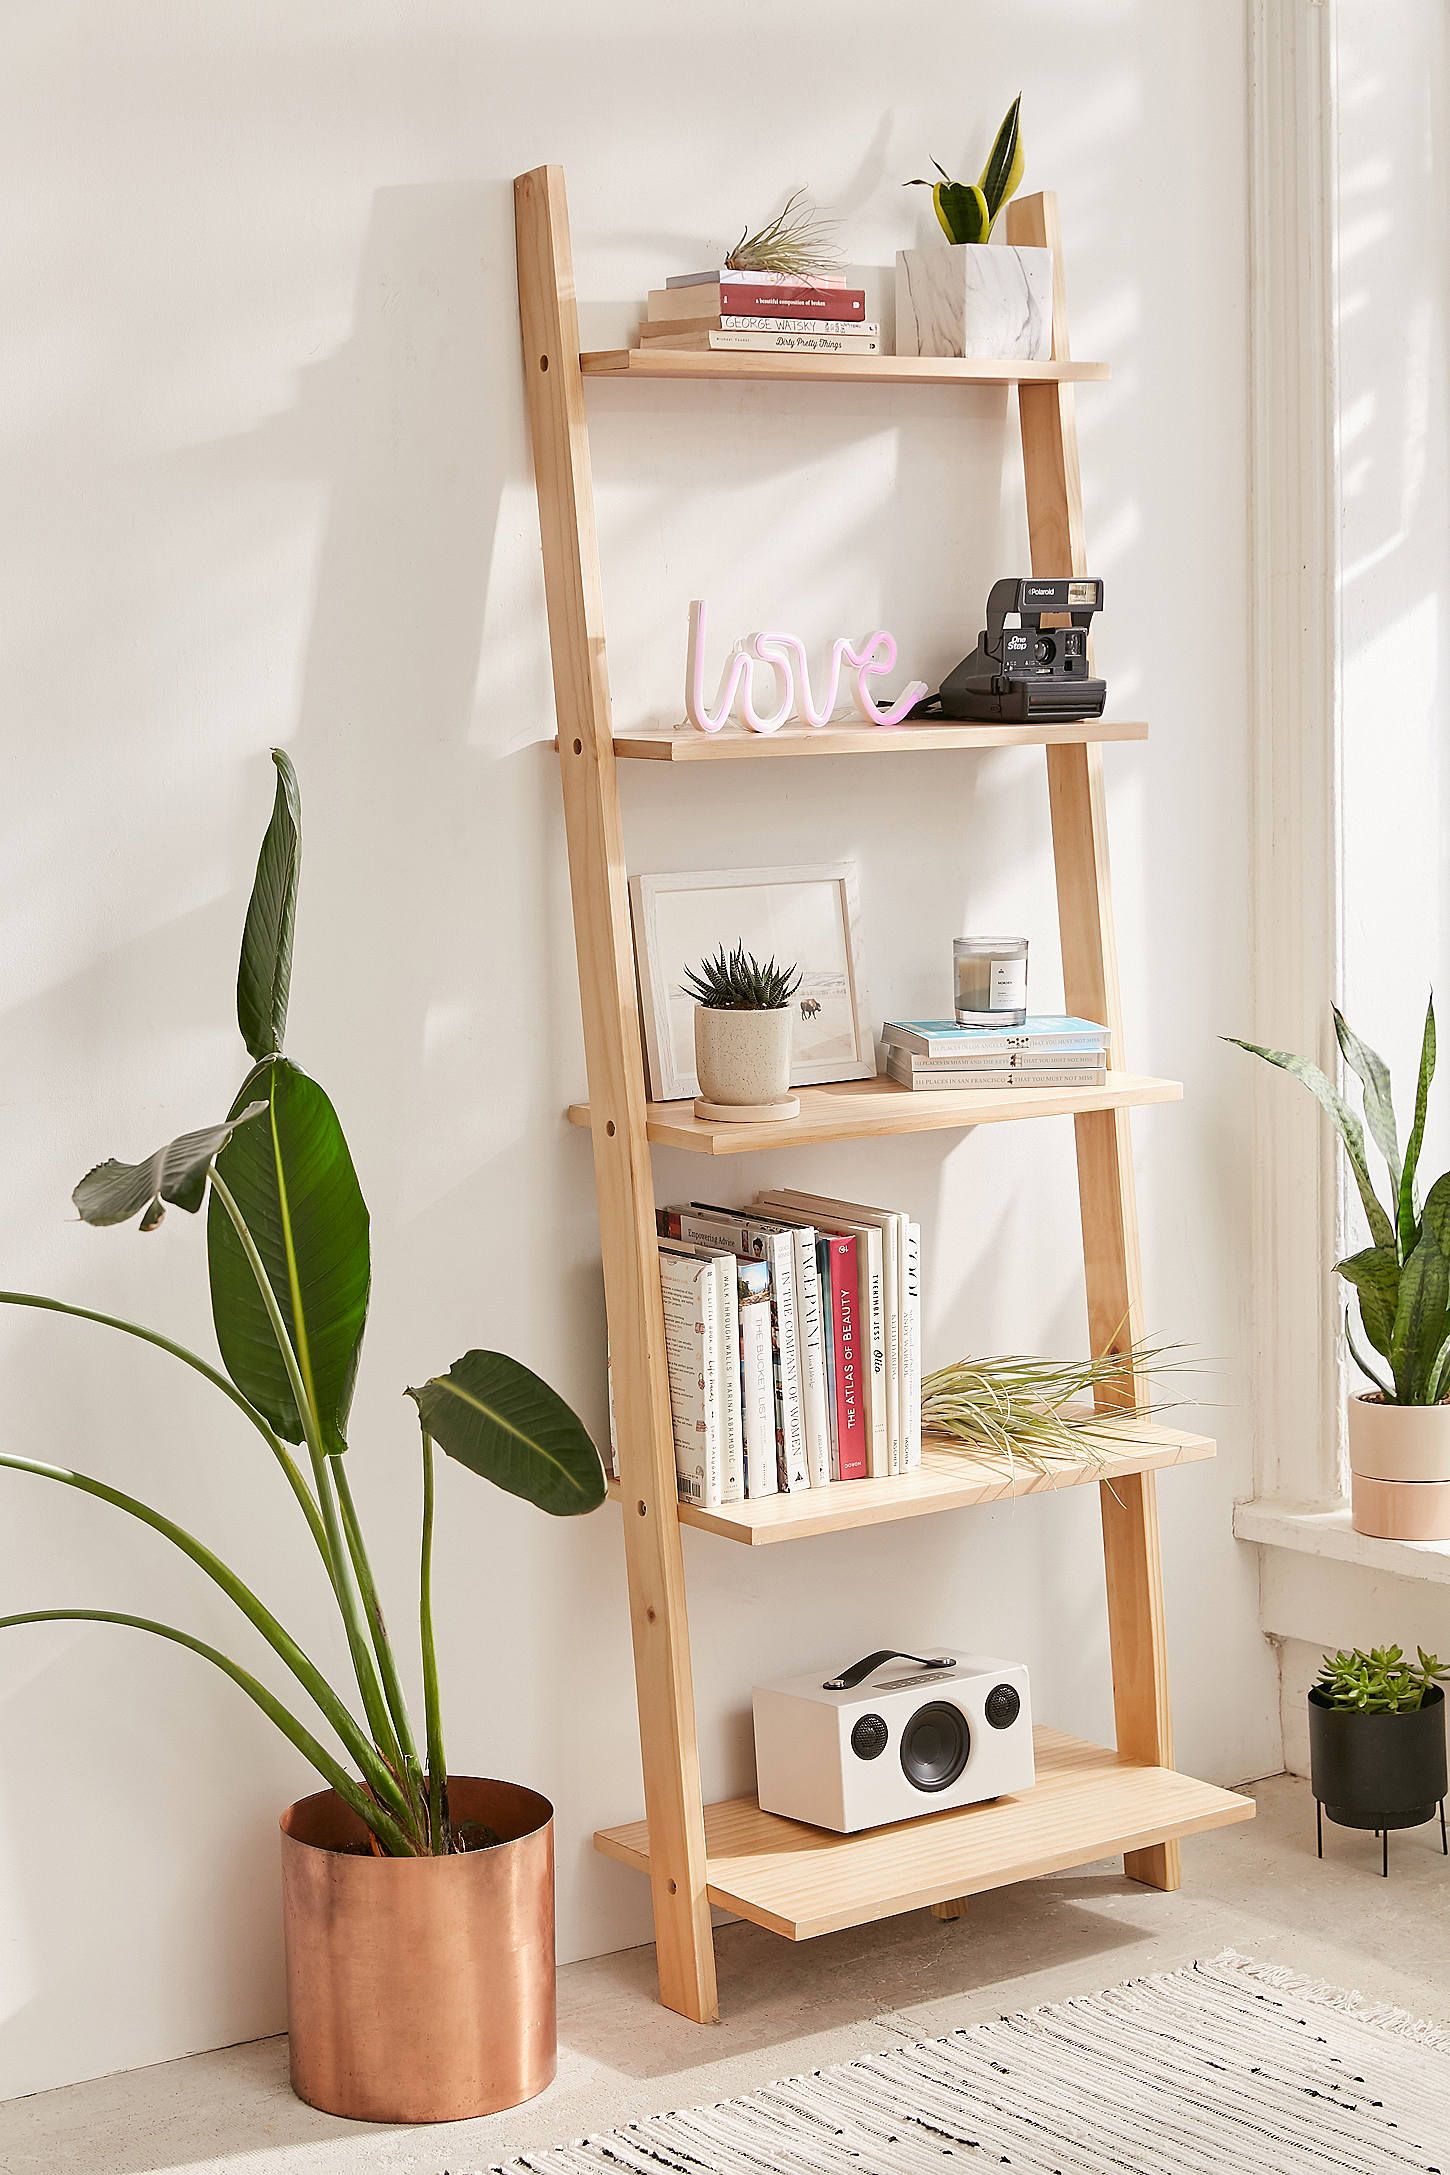 Leaning Bookshelf | Room decor, Apartment decor, Bedroom decor